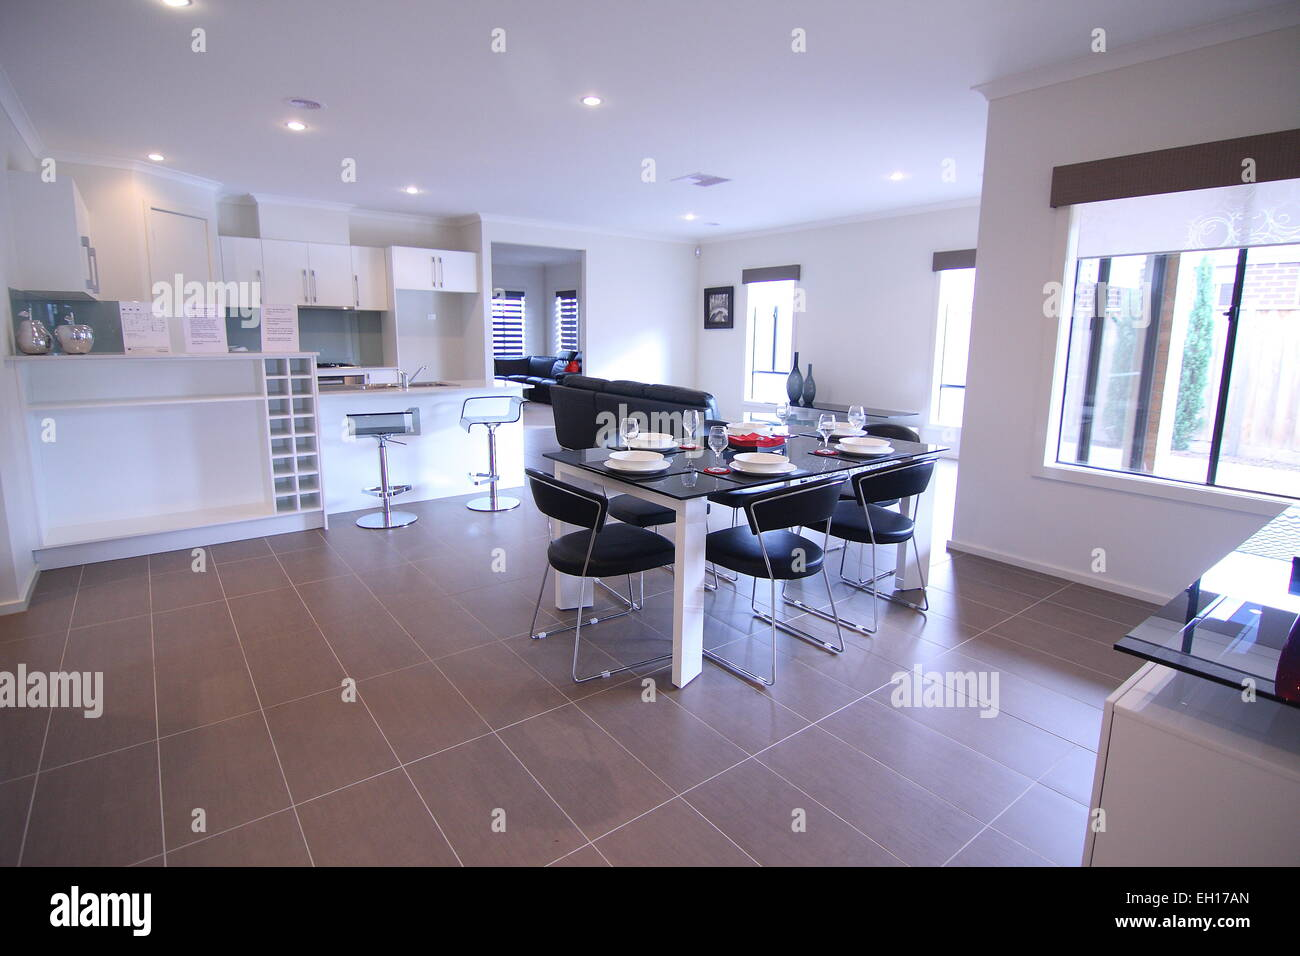 Black Kitchen Tiles Stock Photos & Black Kitchen Tiles Stock Images ...